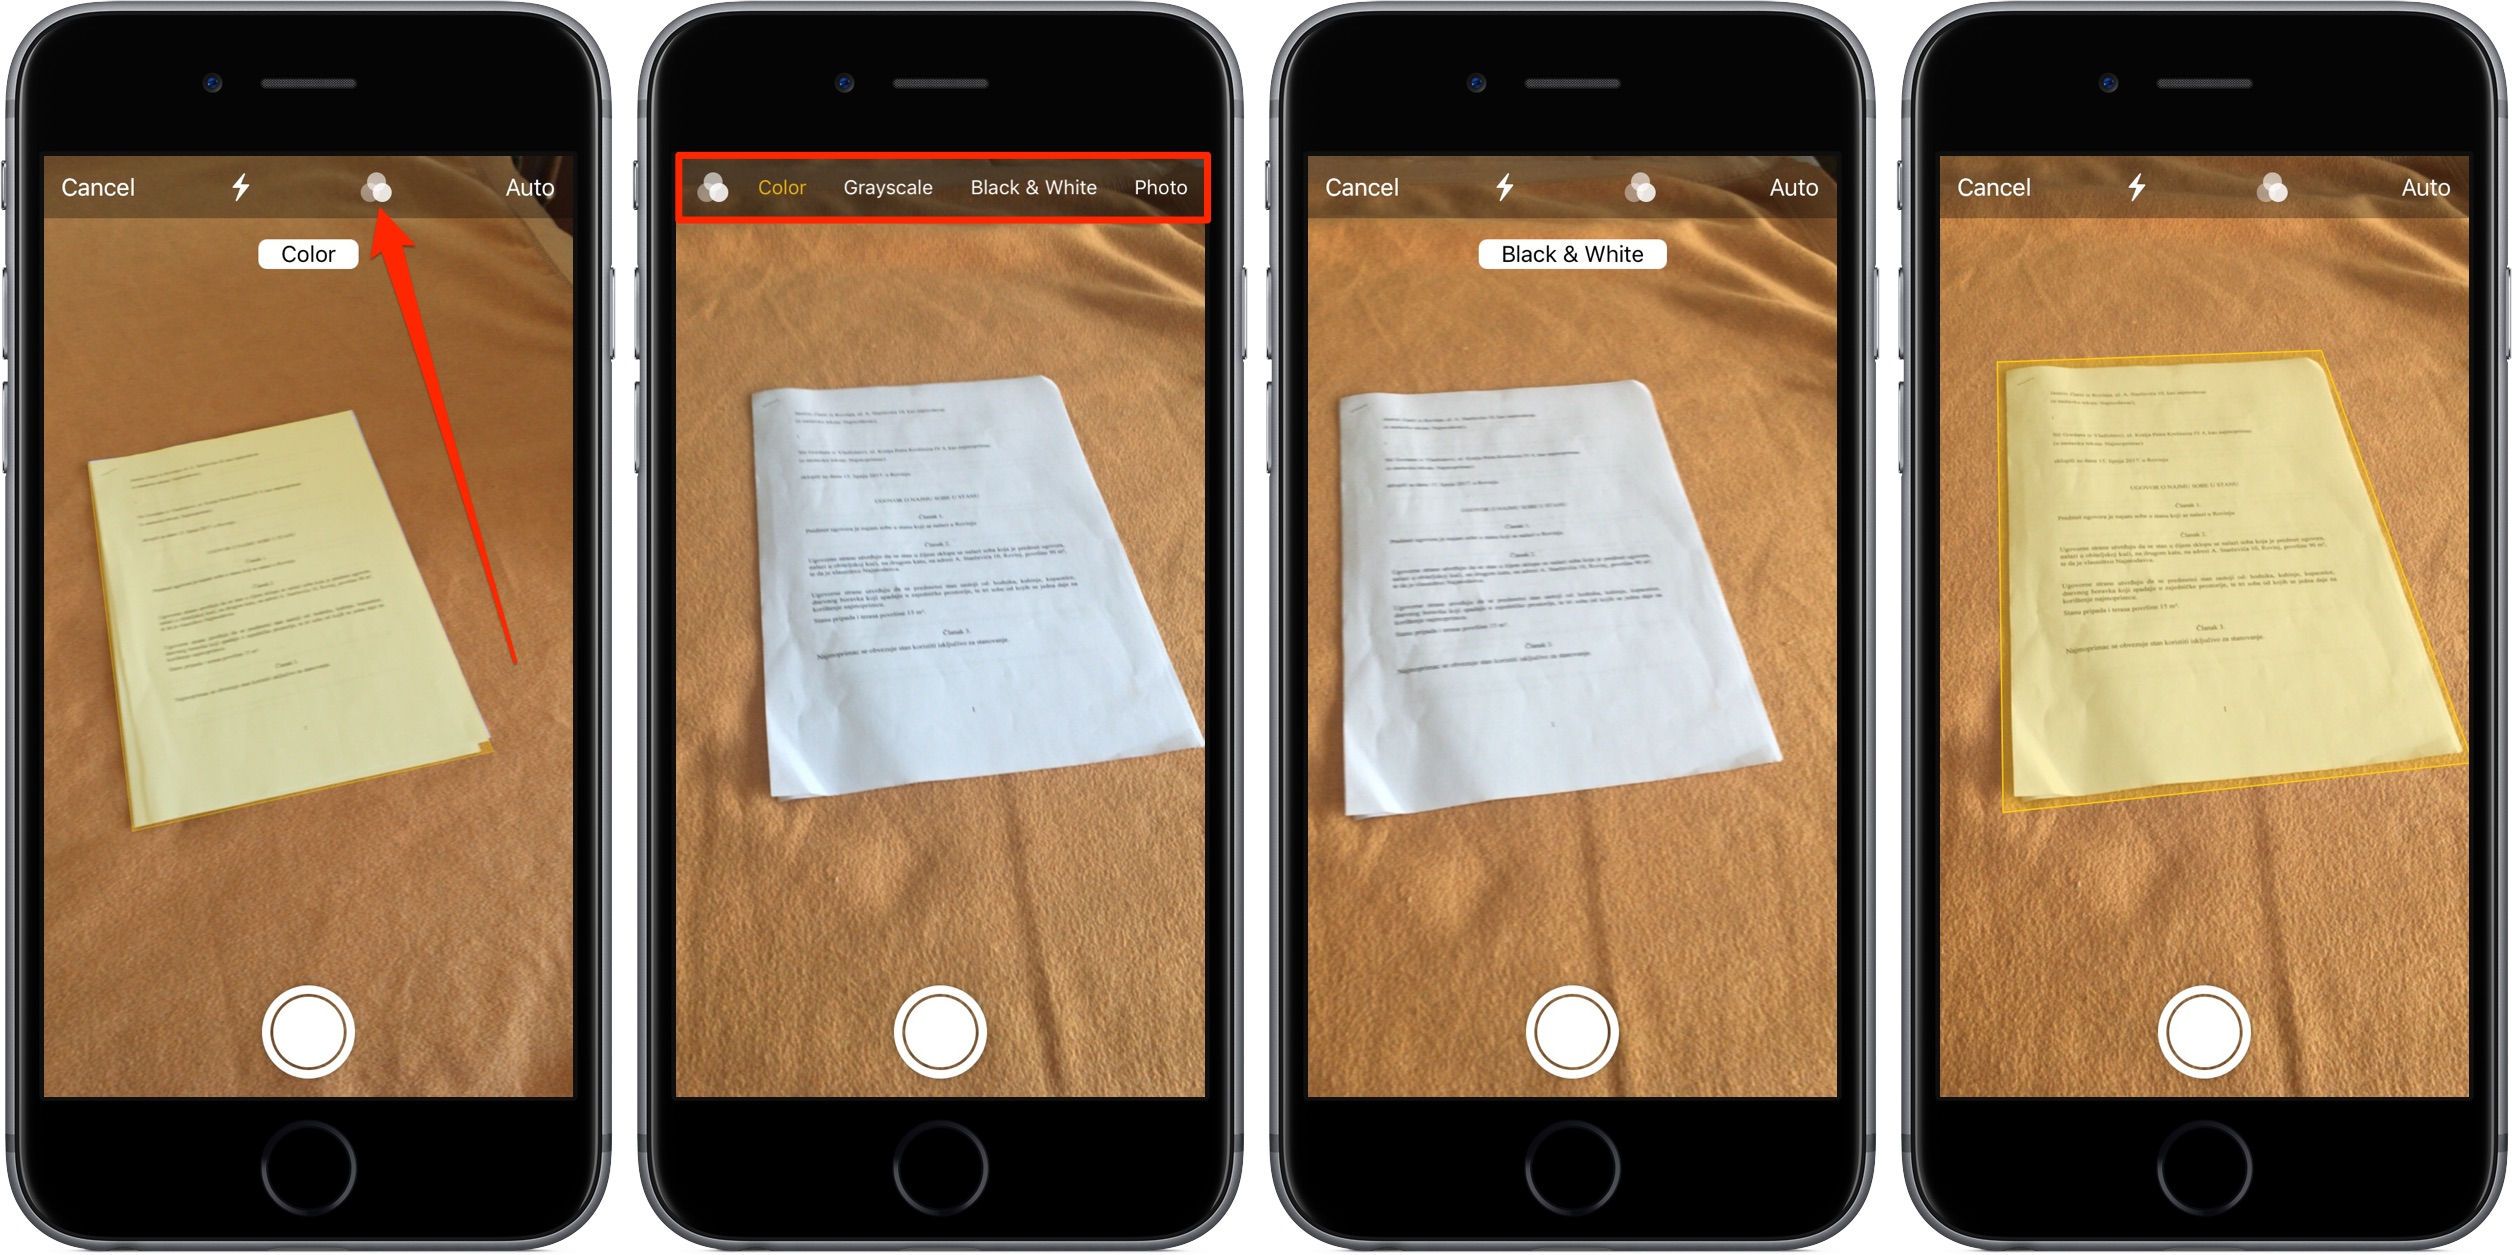 How to scan documents in iOS 11 Notes app